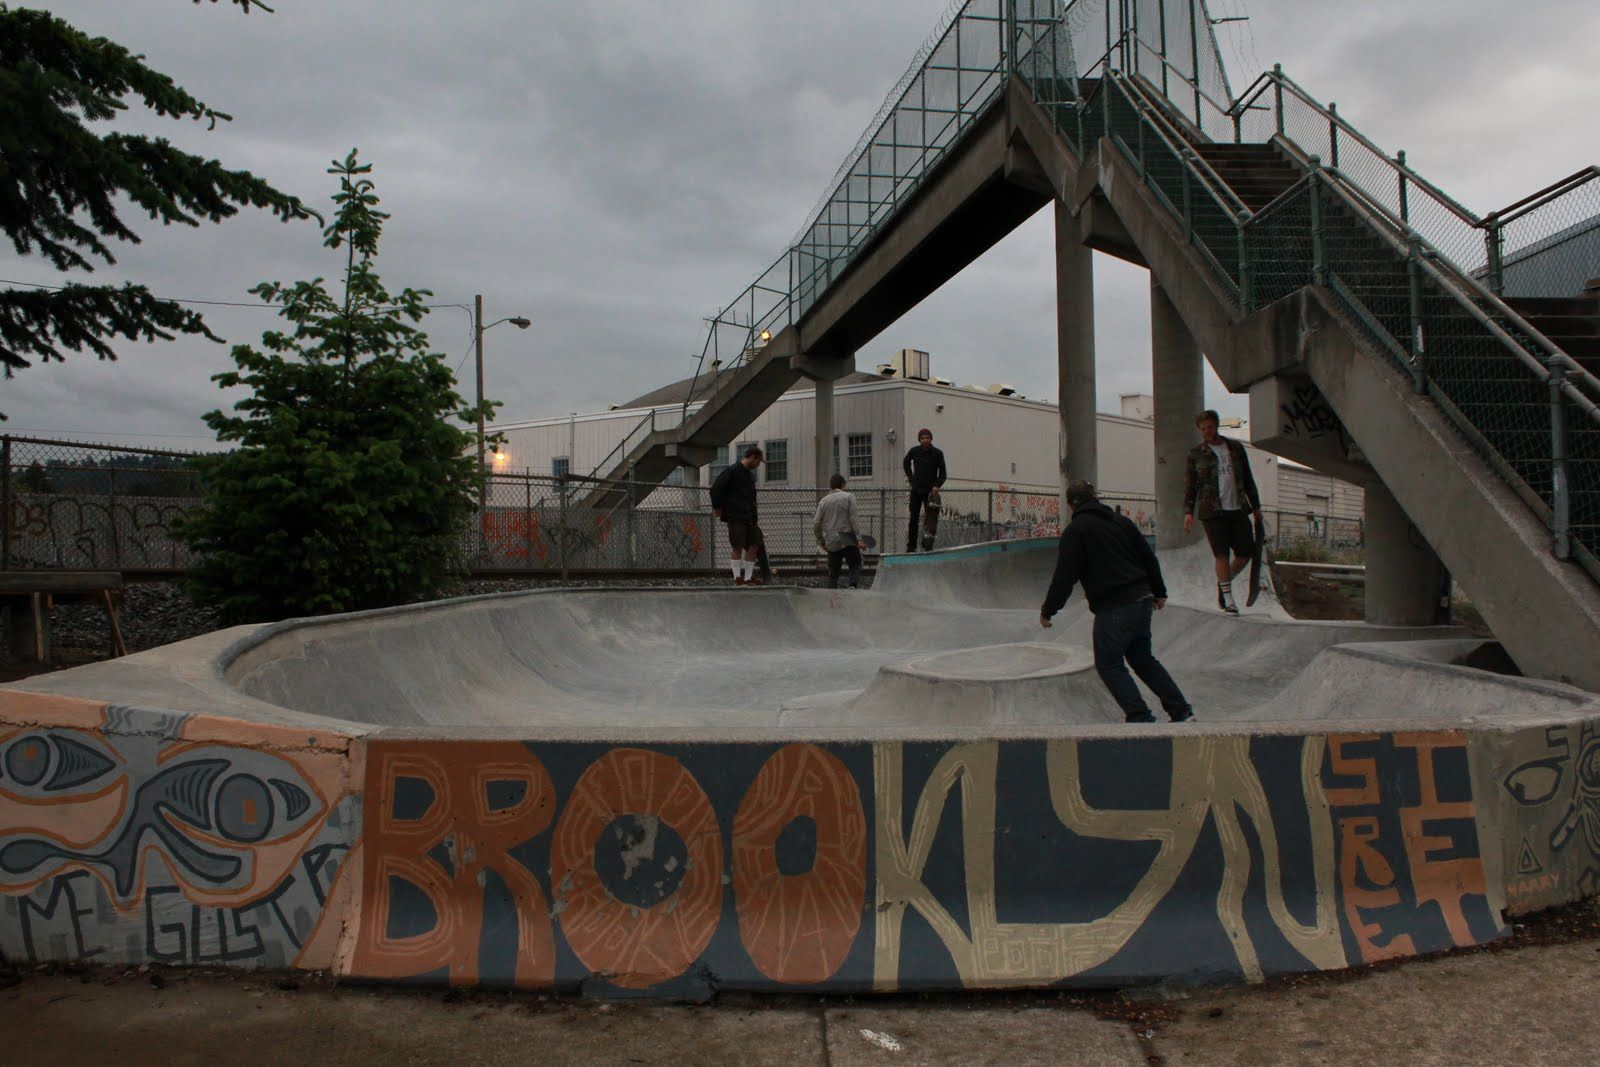 County In Maryland Accepts Skate Park Graffiti As Urban Art